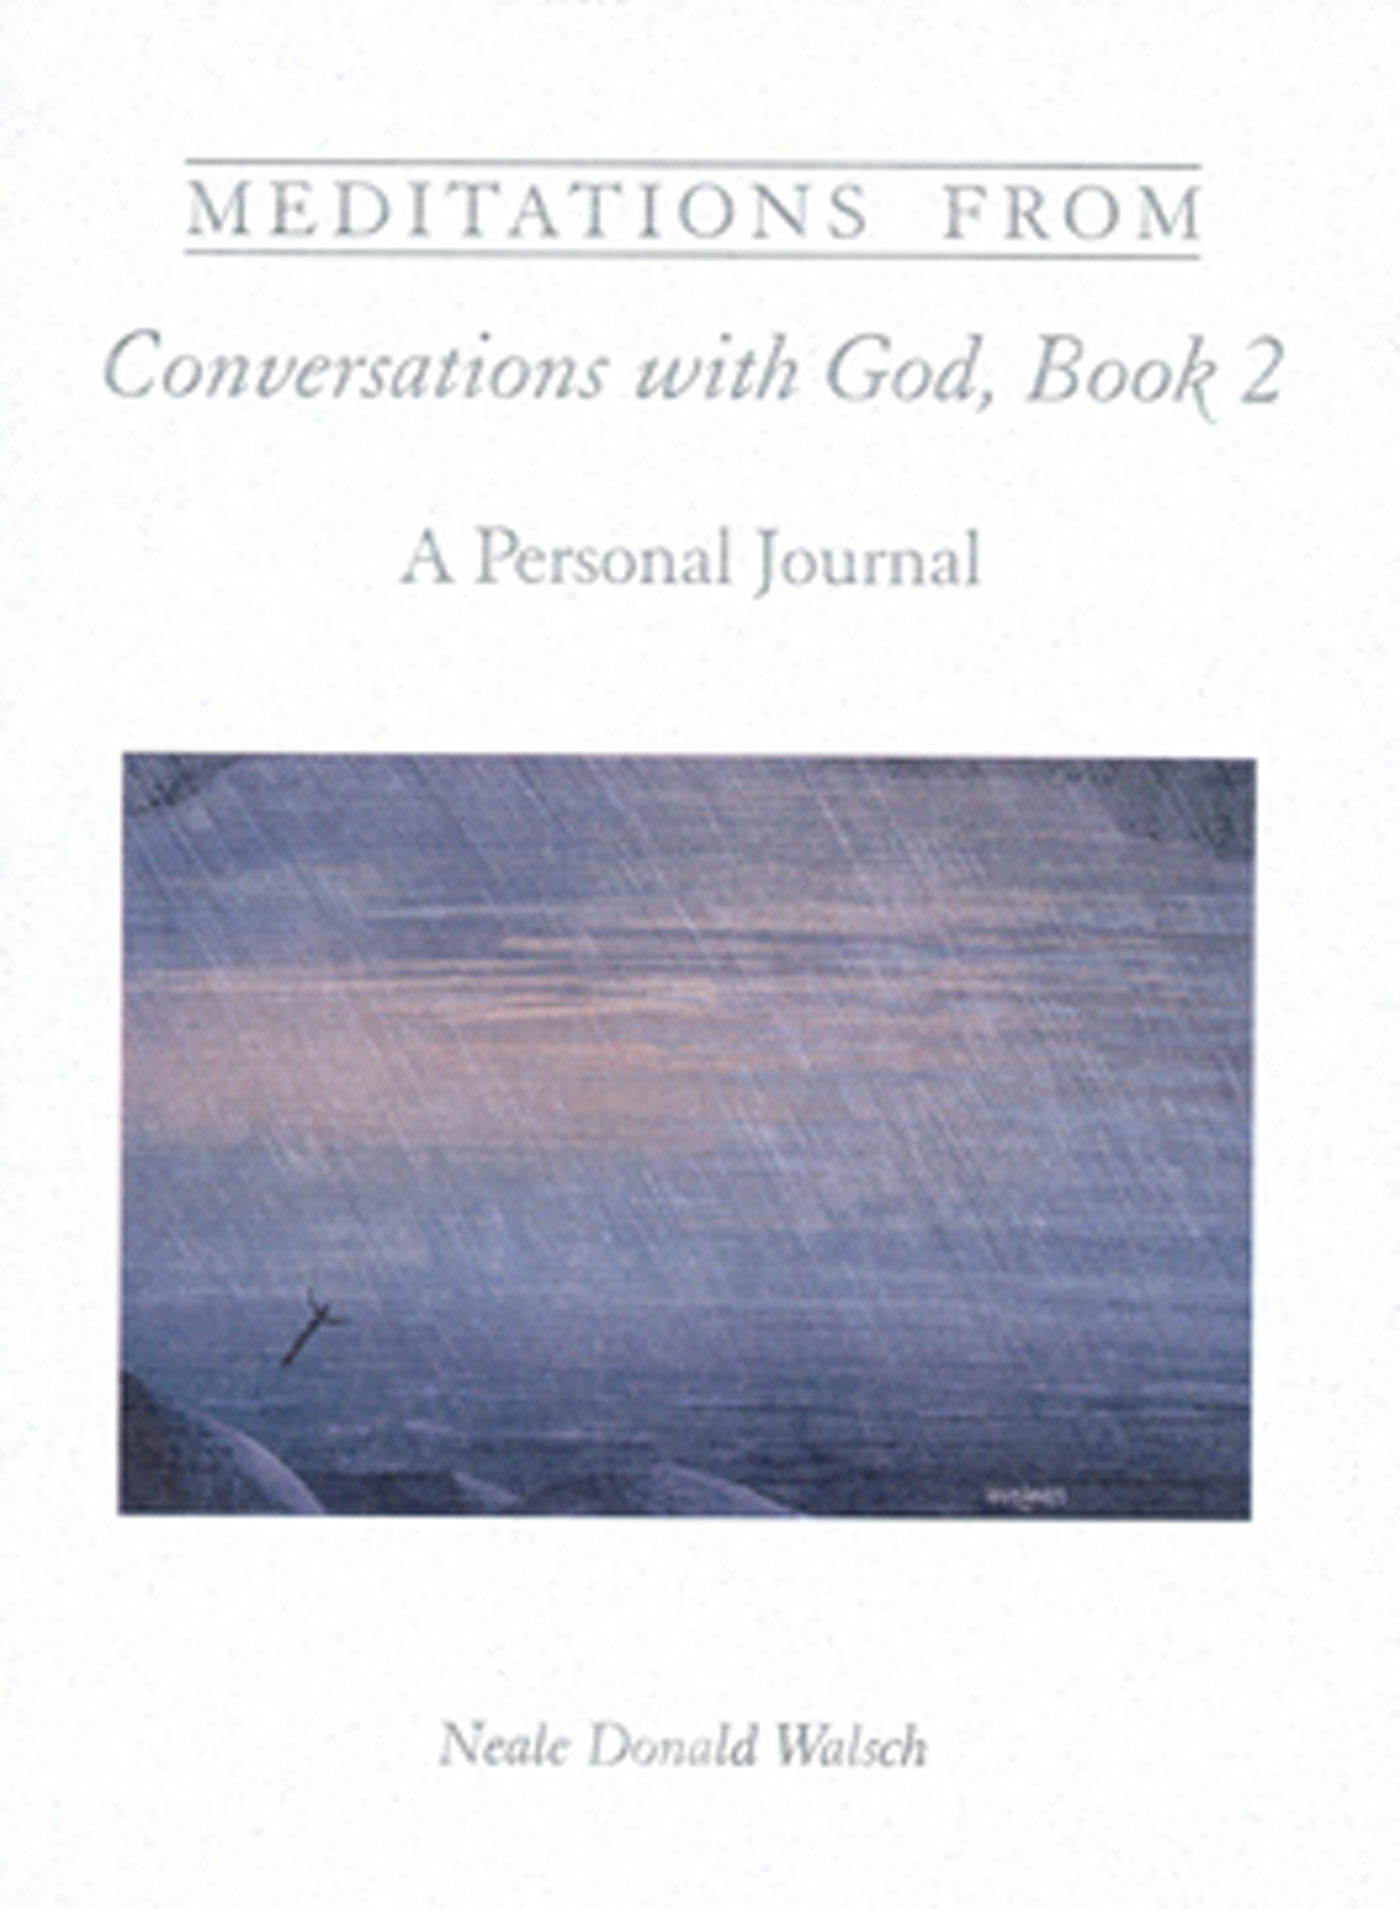 Meditations From Conversations With God, Book 2 (ebook)neale Donald Walsch